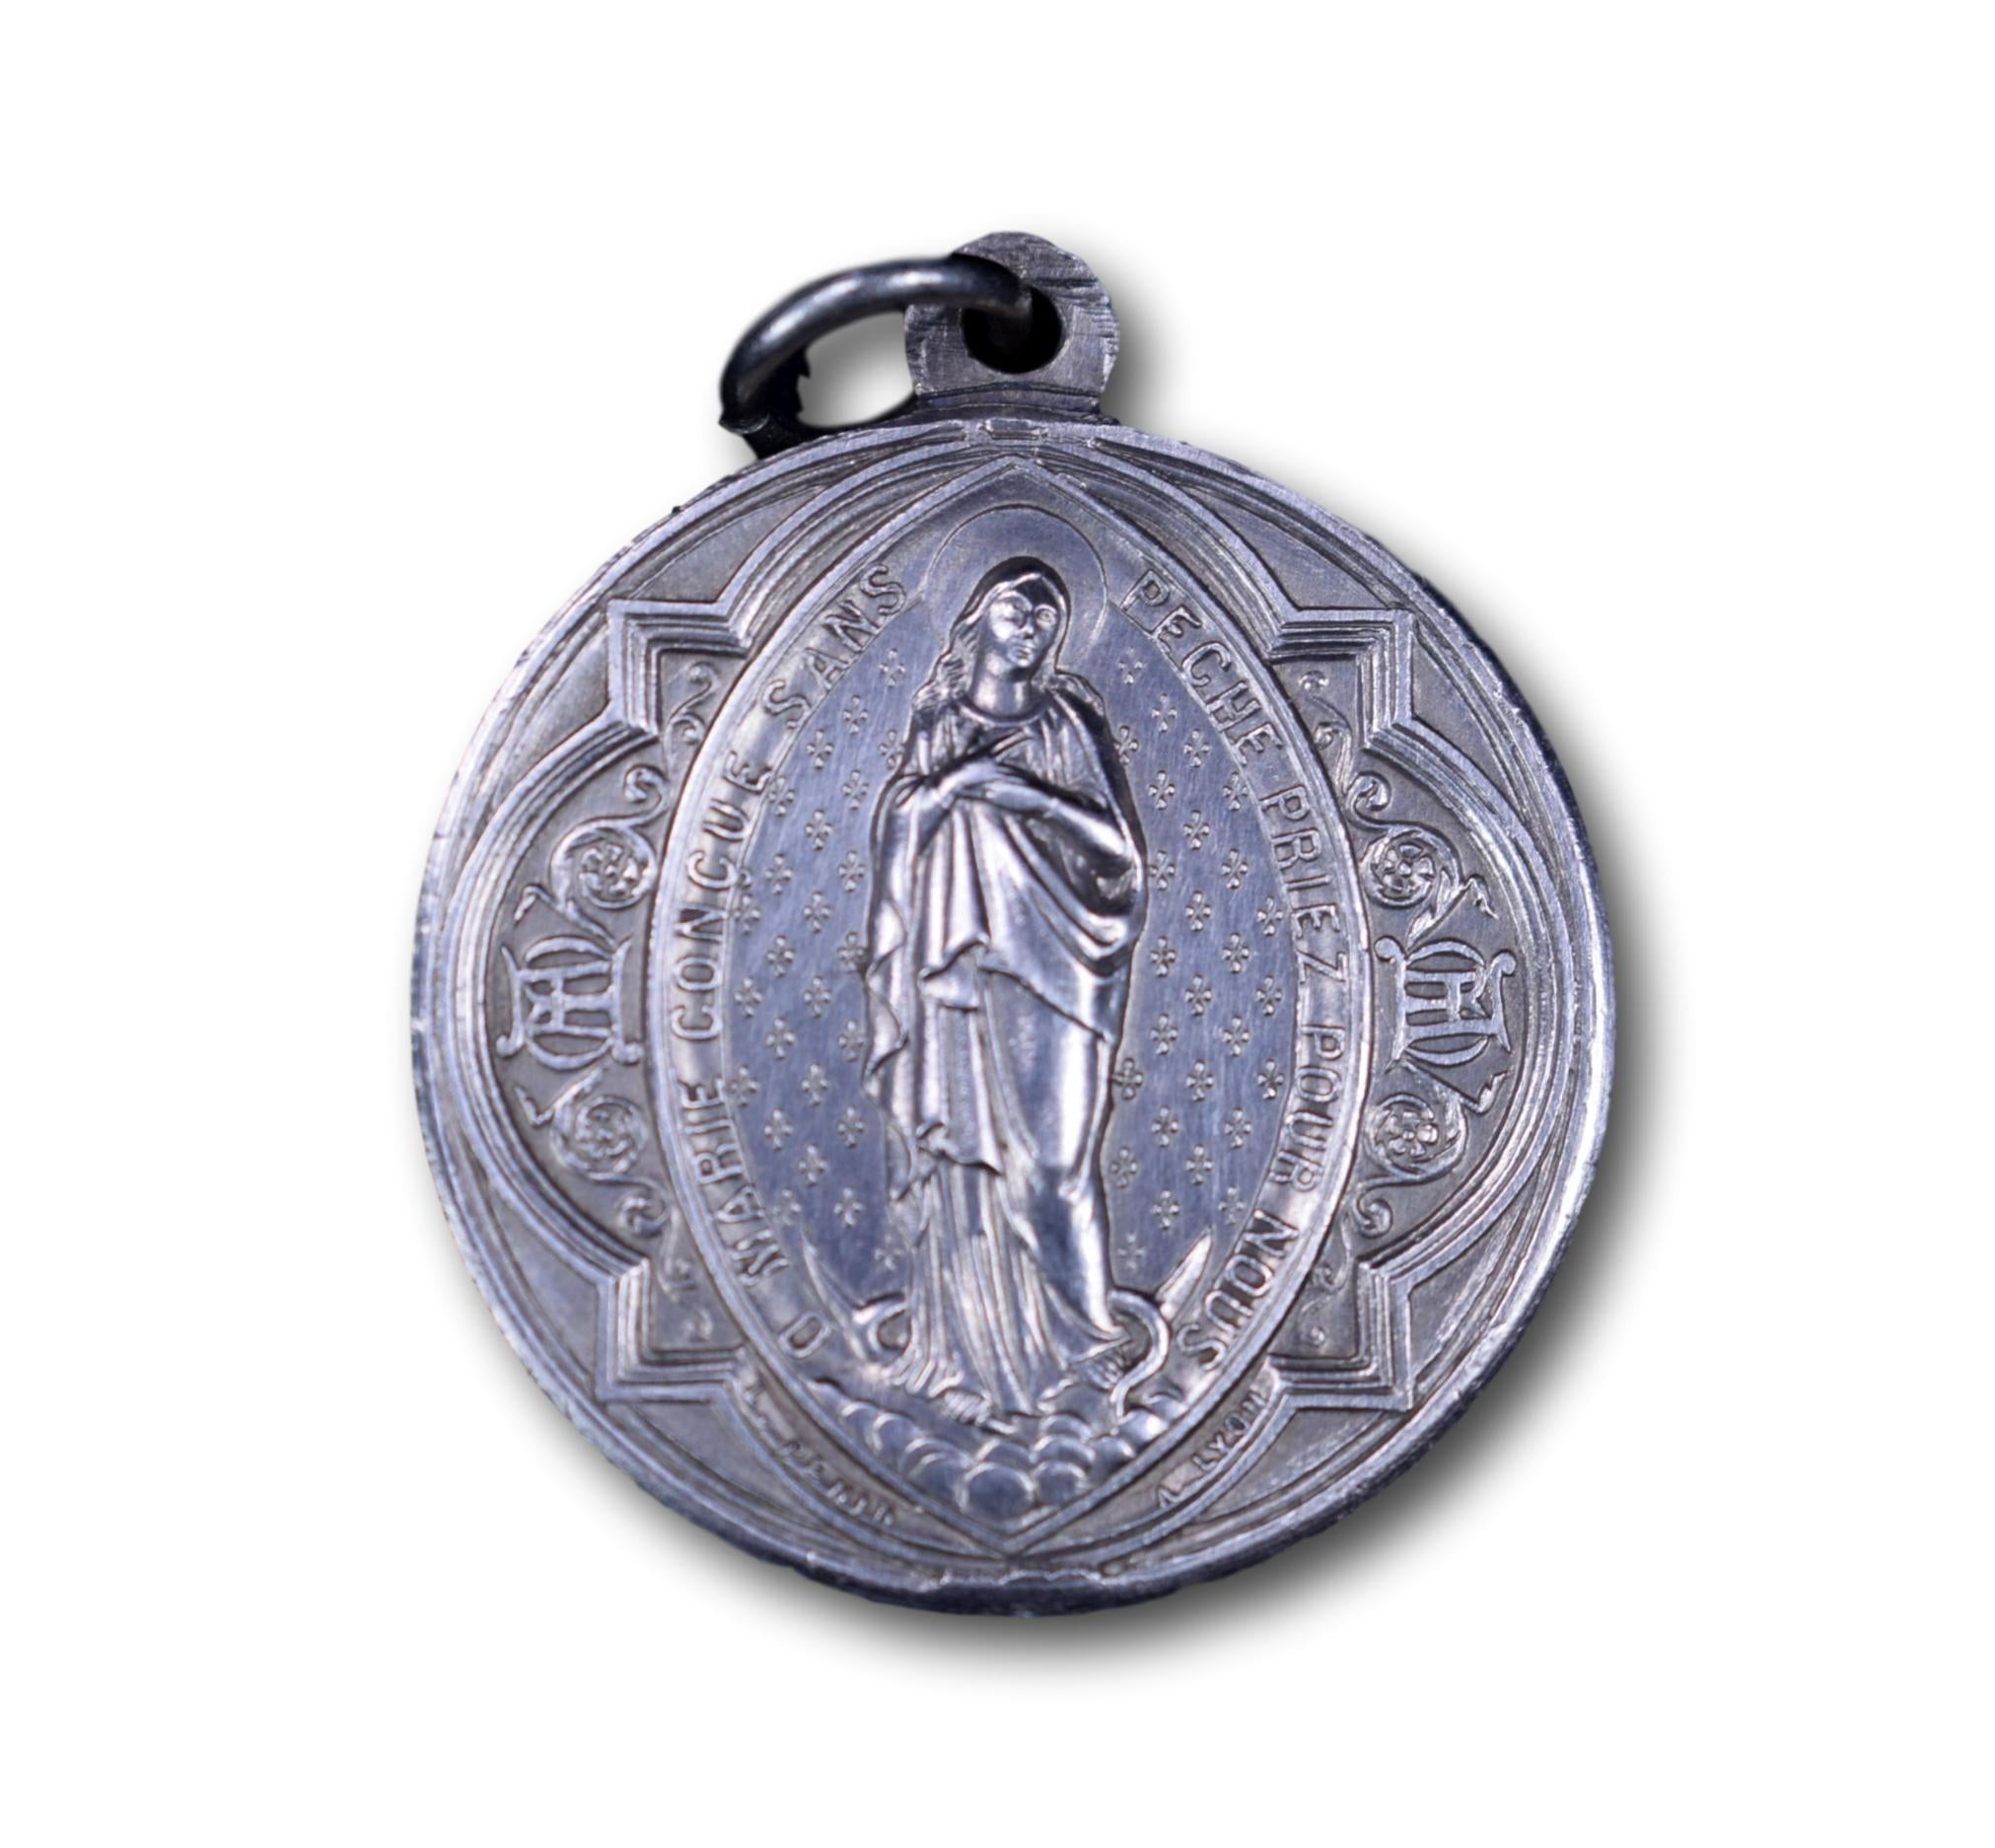 Our Lady Virgin Mary Medal by Penin, French Antique Religious Silver Pendant Charm, Mary's Children Association Parish St Irenee